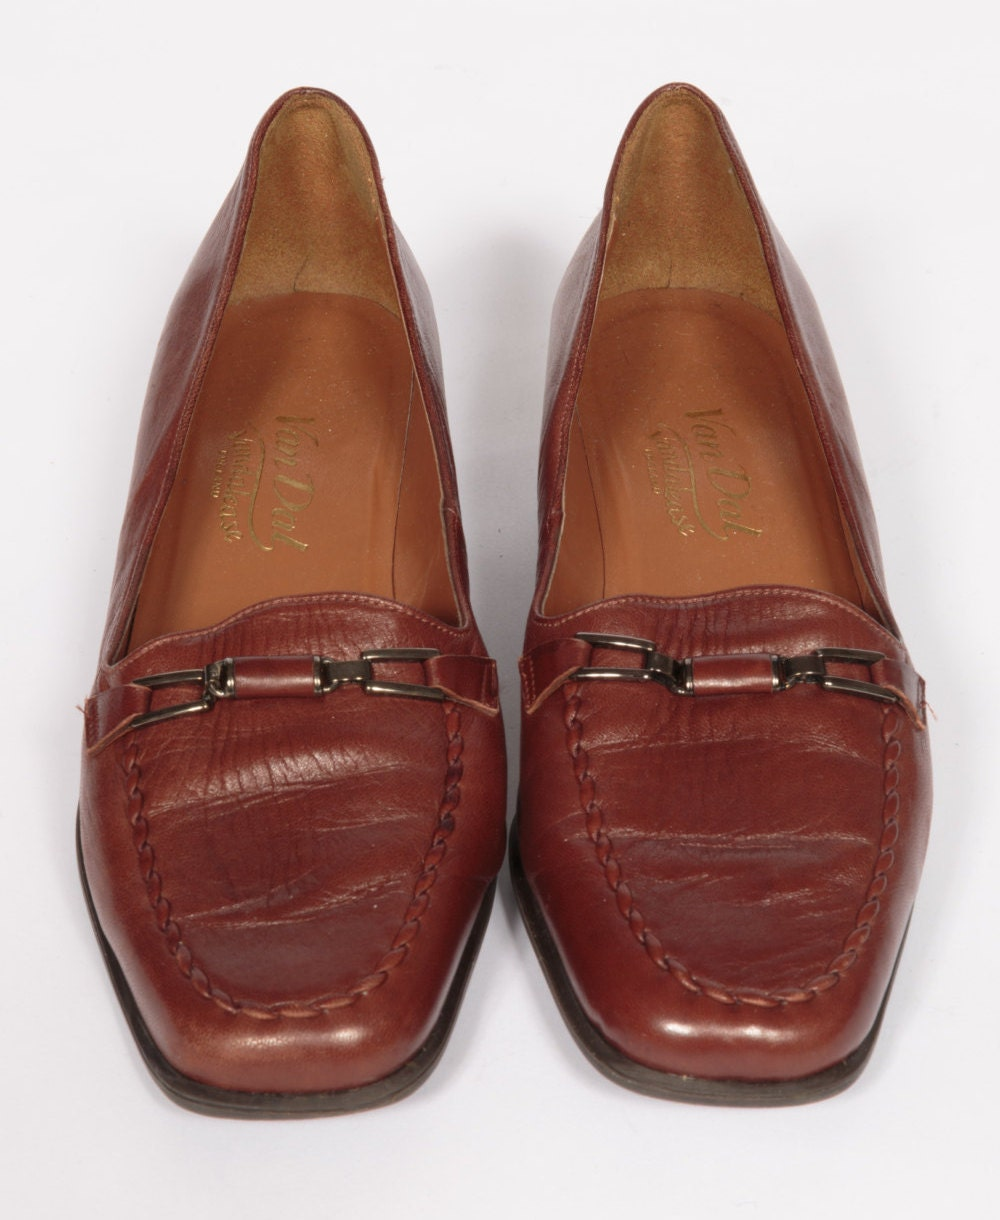 Beautiful classic ladies Van Dal brown leather shoes UK Size 4.5